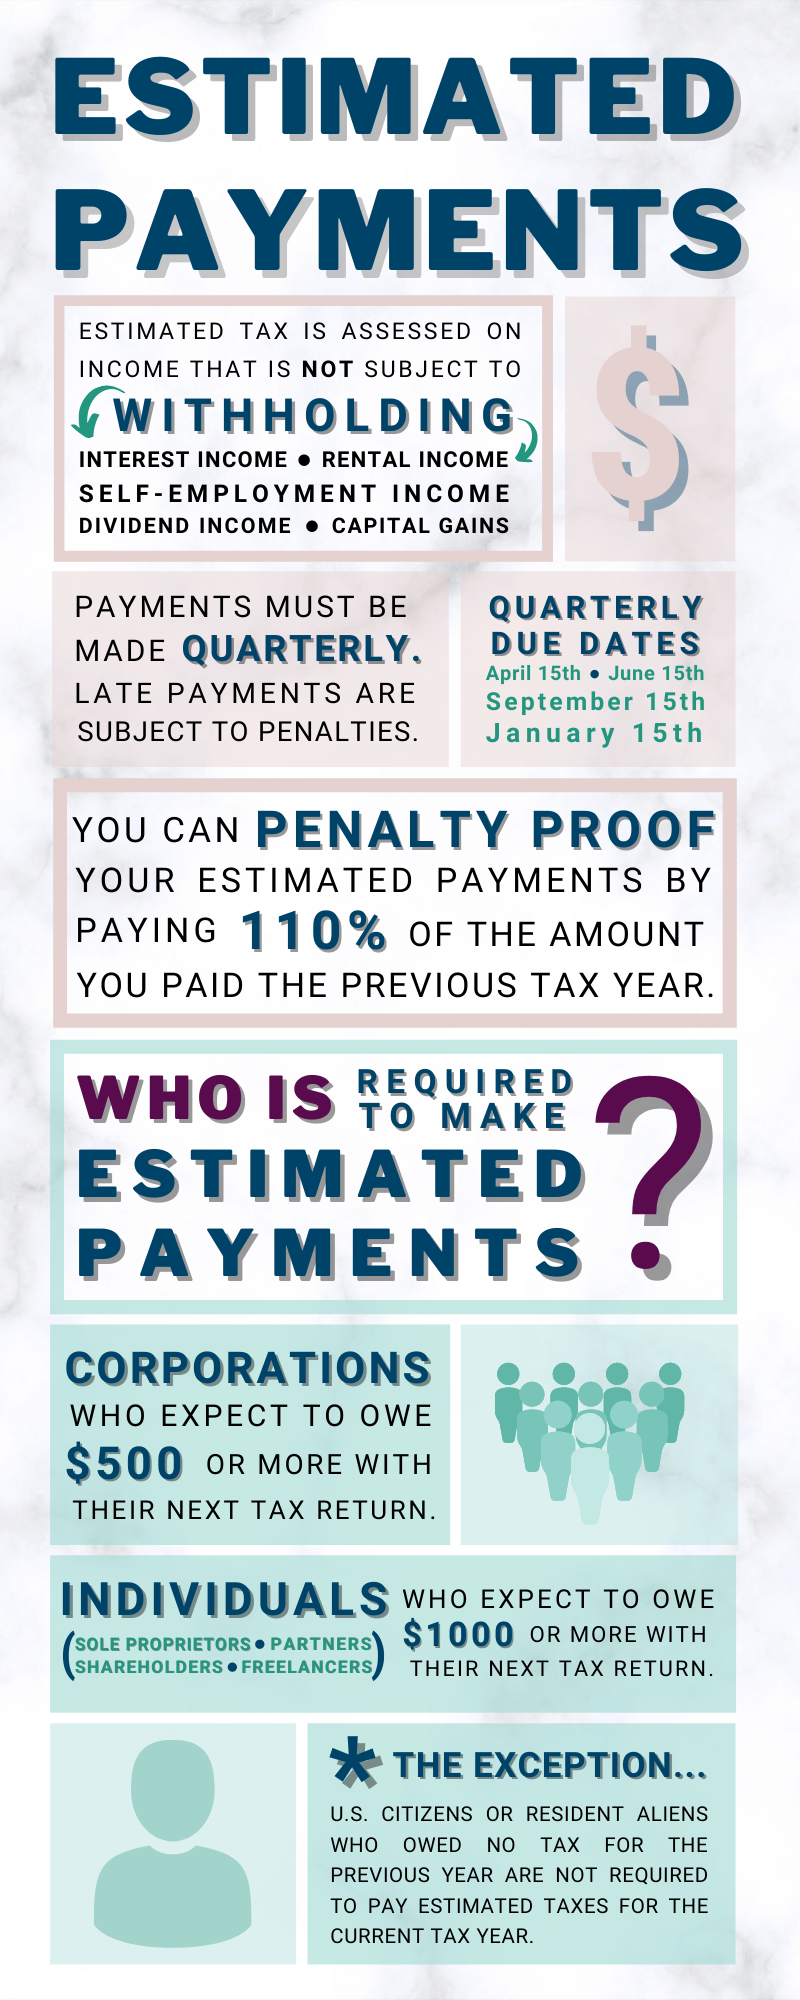 Estimated Payments Infographic